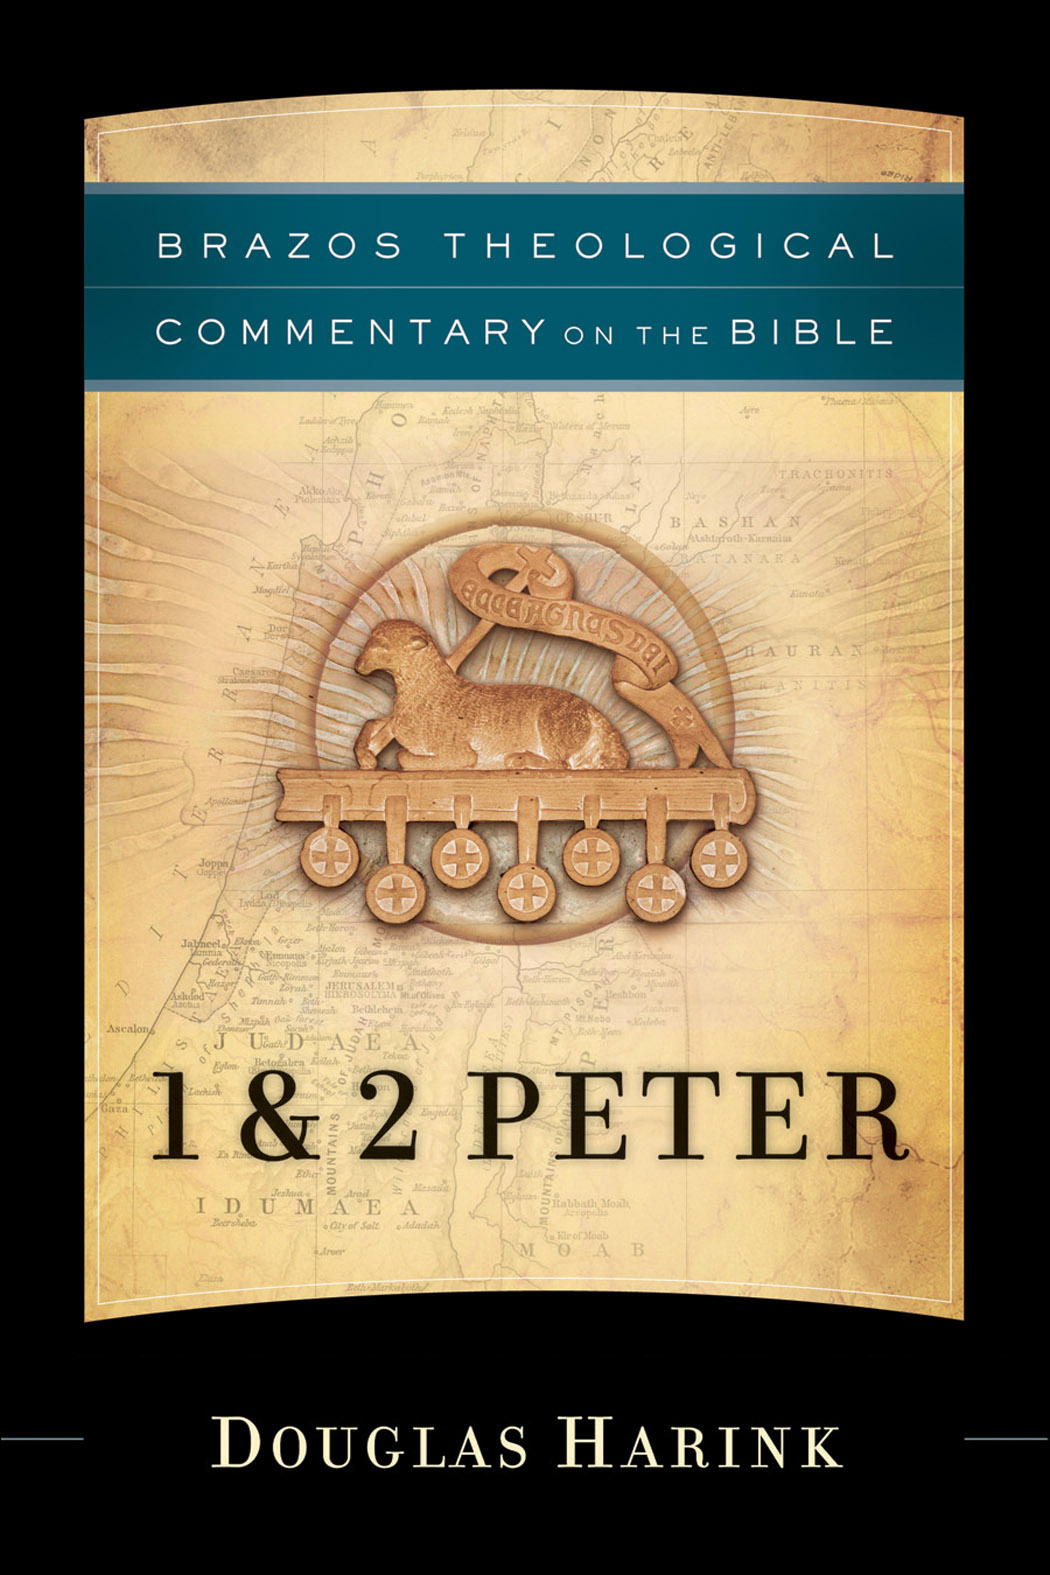 1 & 2 Peter (Brazos Theological Commentary on the Bible) By: Douglas Harink